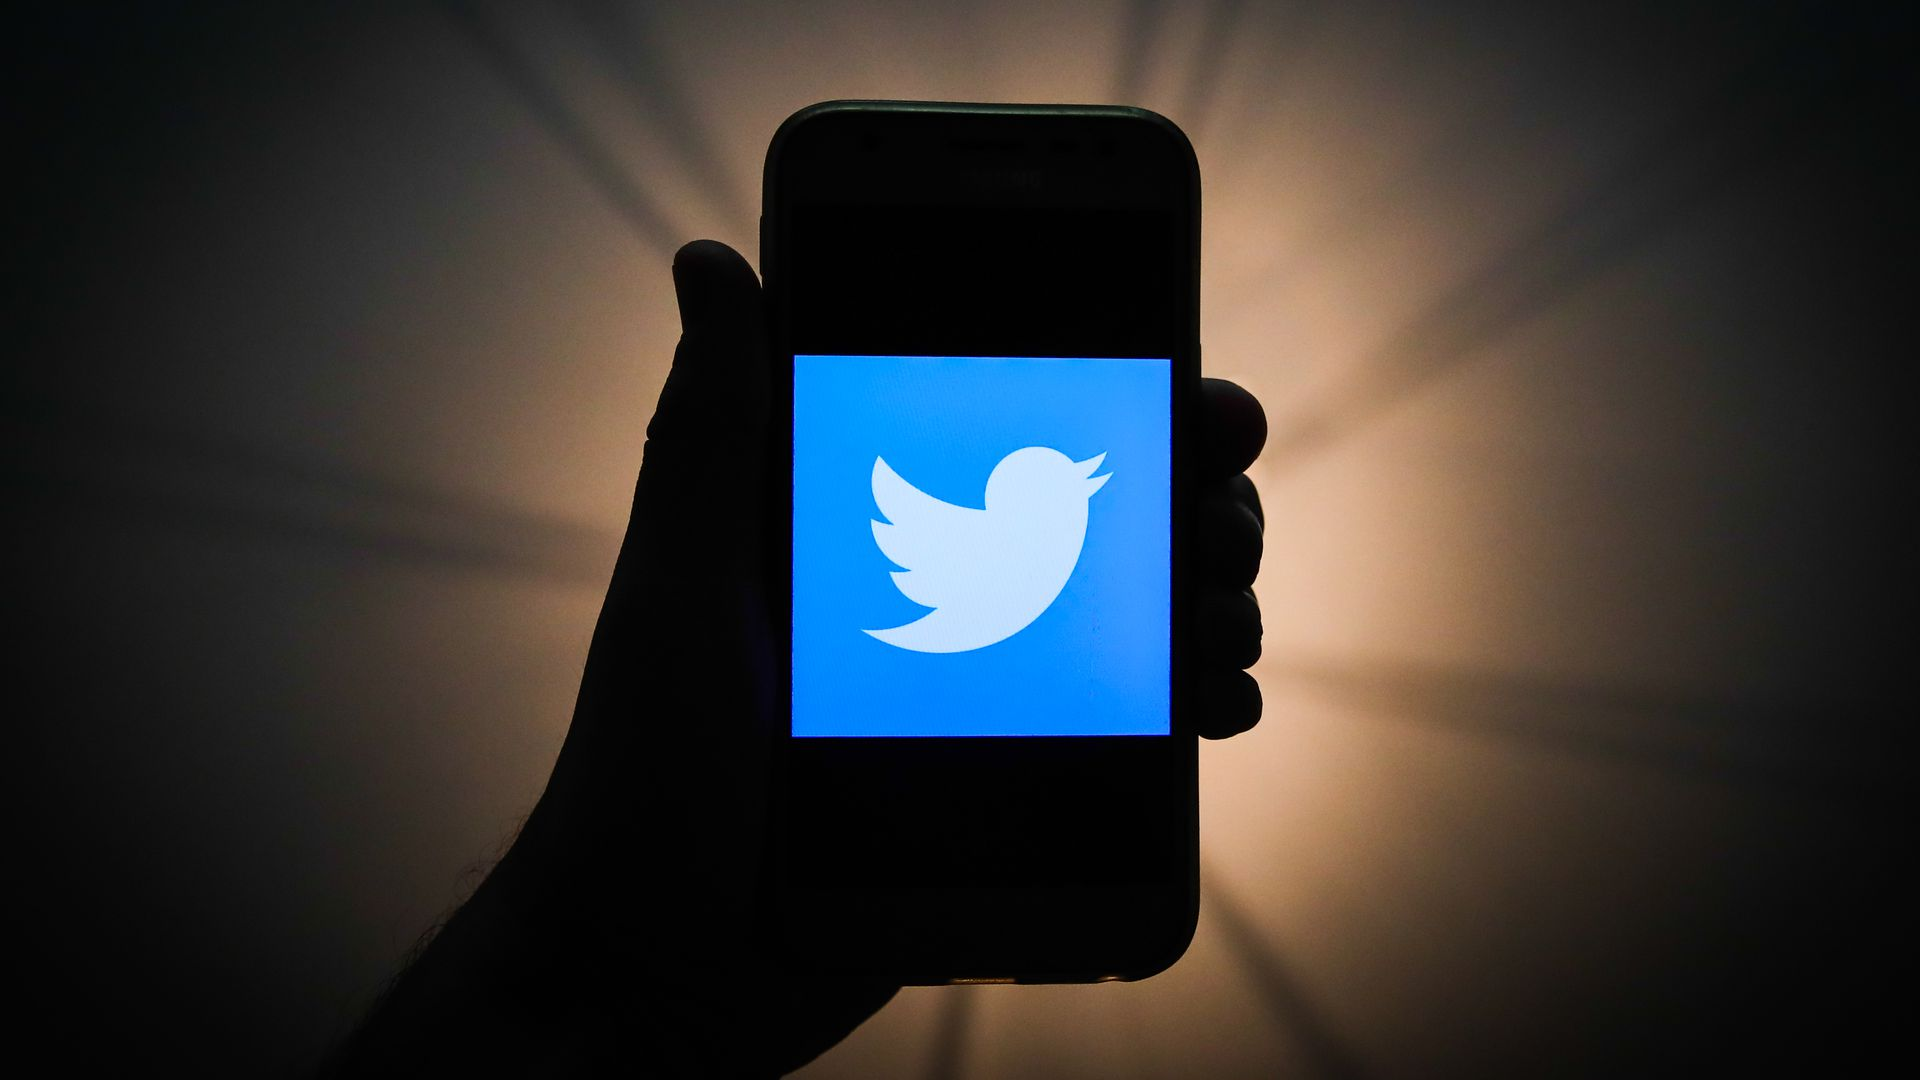 Twitter logo is seen displayed on a phone screen in this illustration photo taken in Krakow, Poland on November 13, 2019.